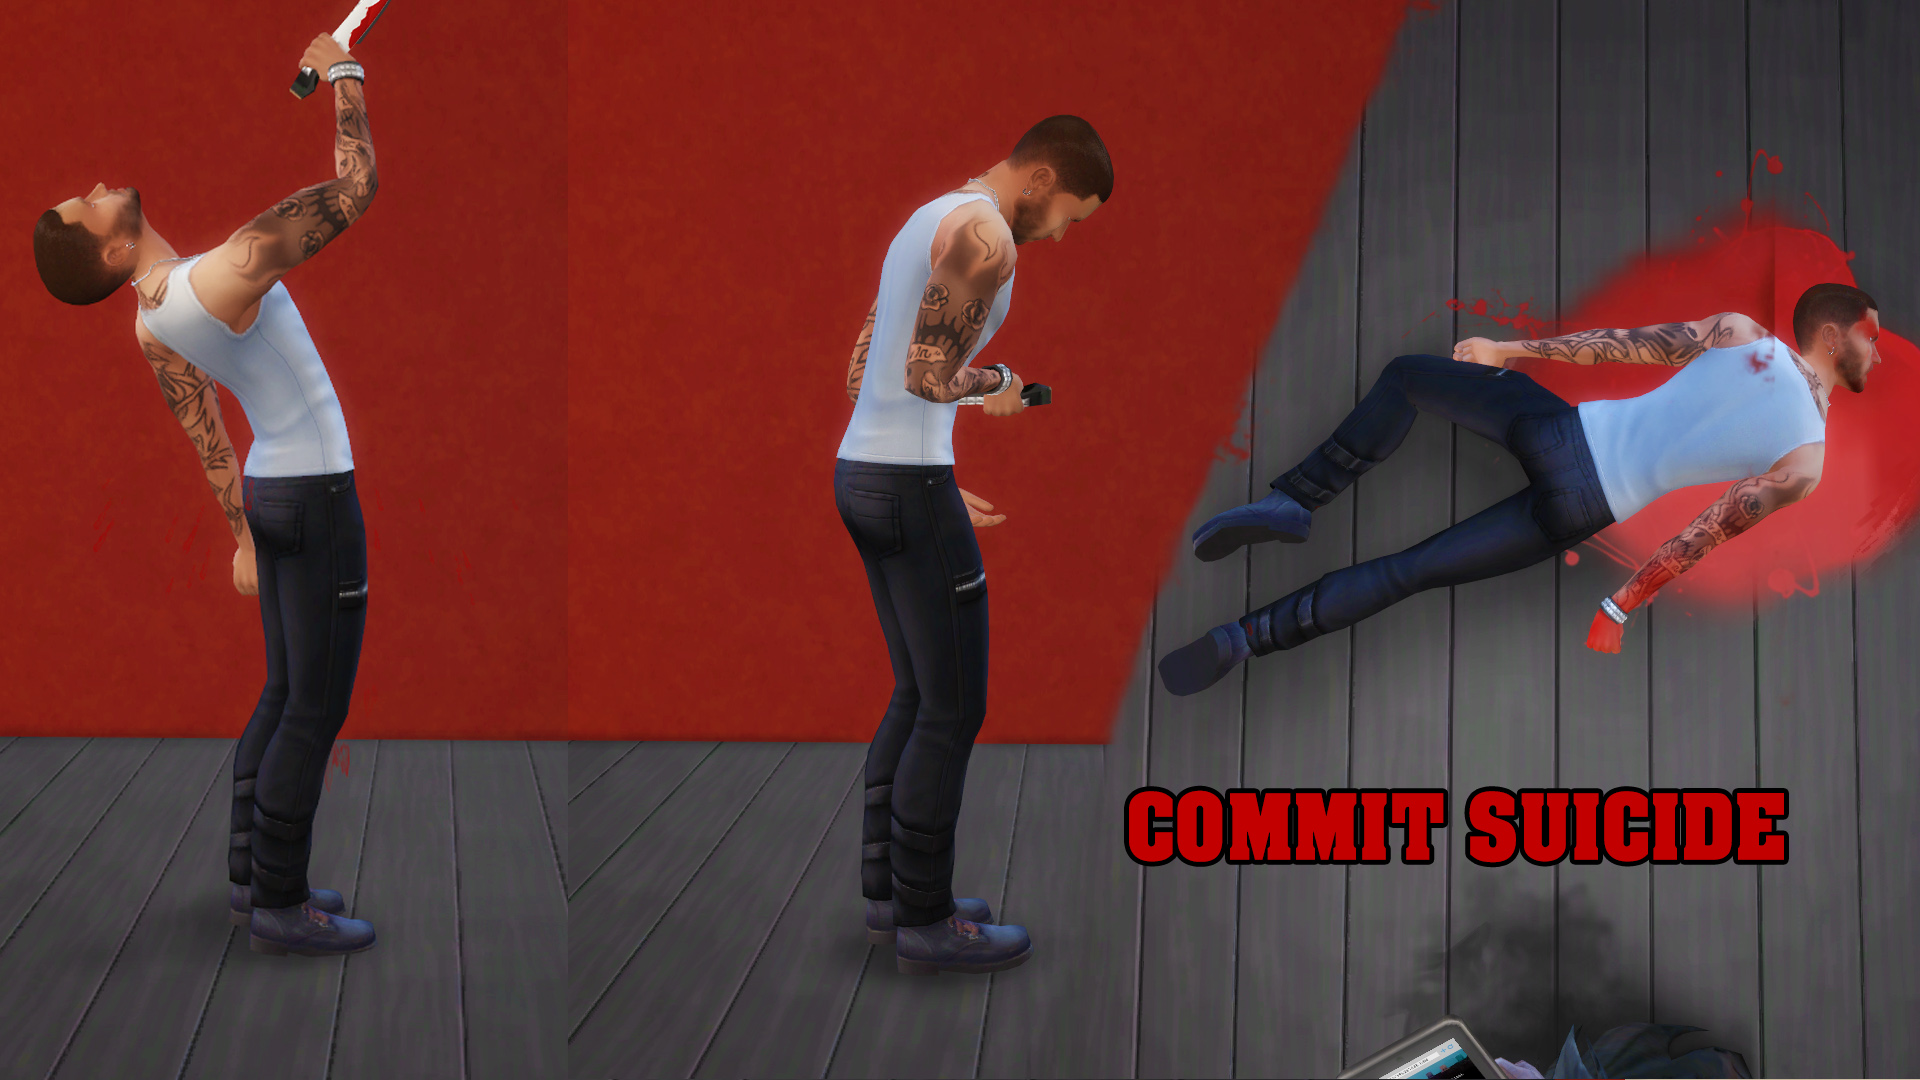 Commit Suicide image - Extreme Violence mod for The Sims 4